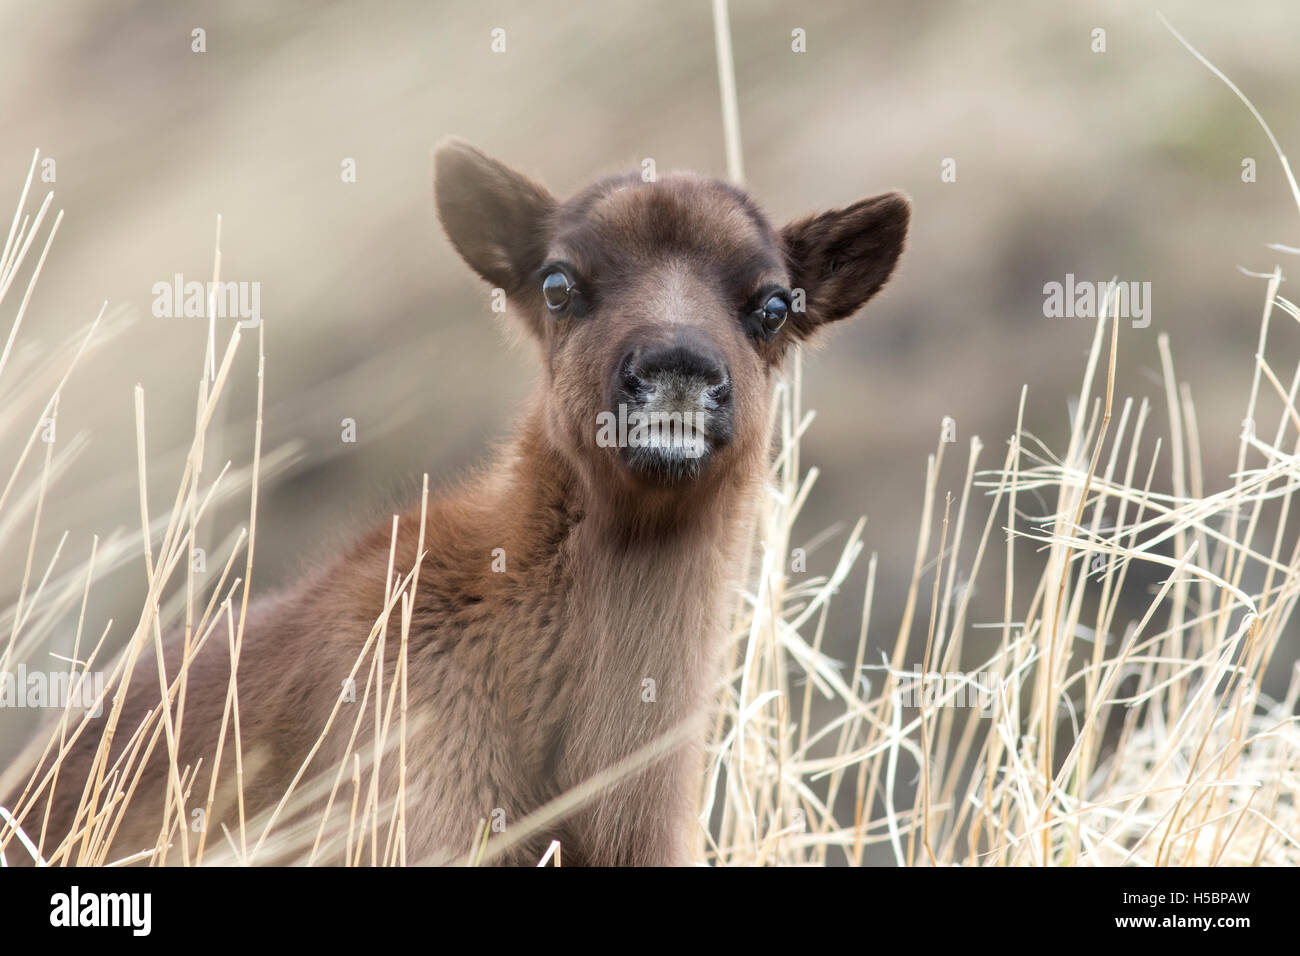 Portrait calf reindeer cloudy day in the grass - Stock Image